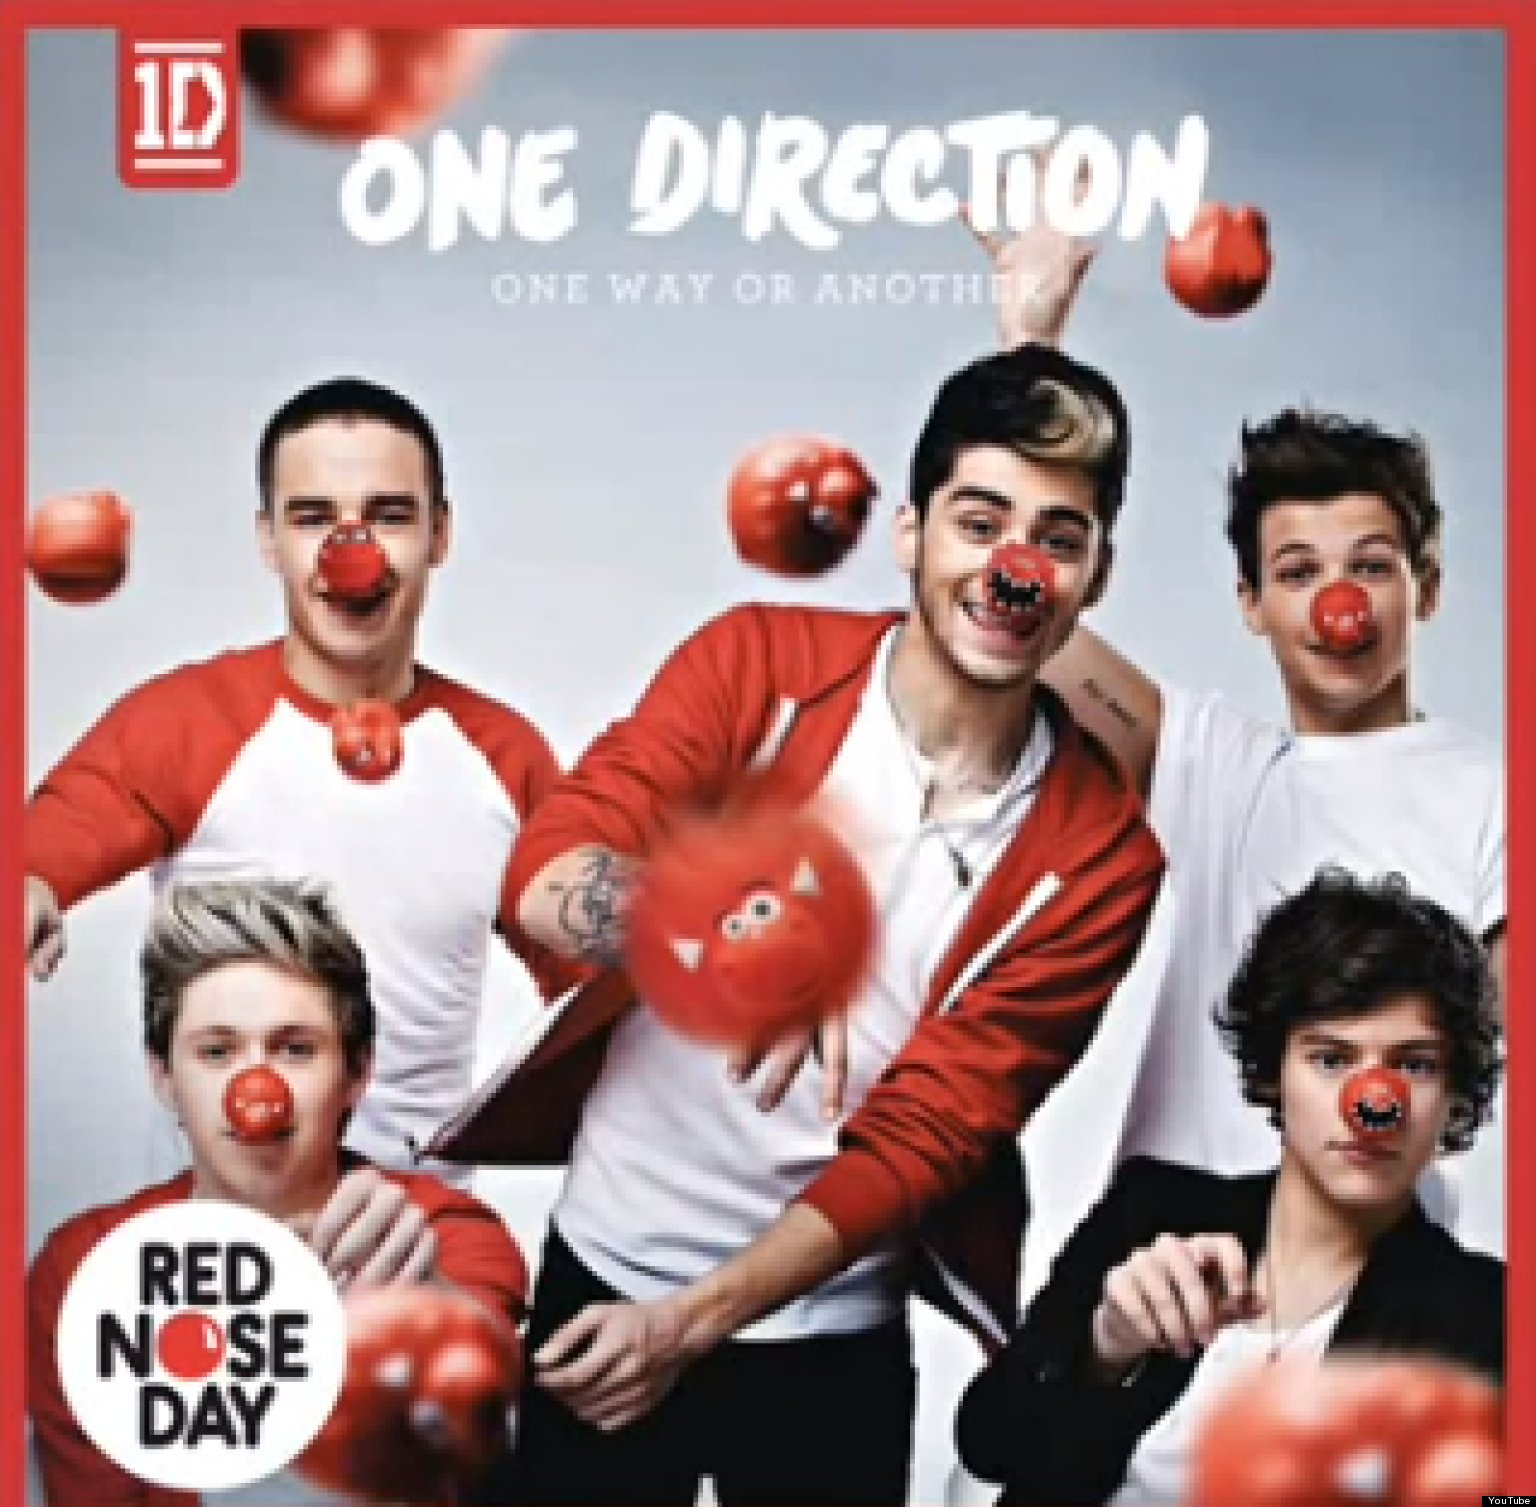 One Way Dance One Direction 'one Way or